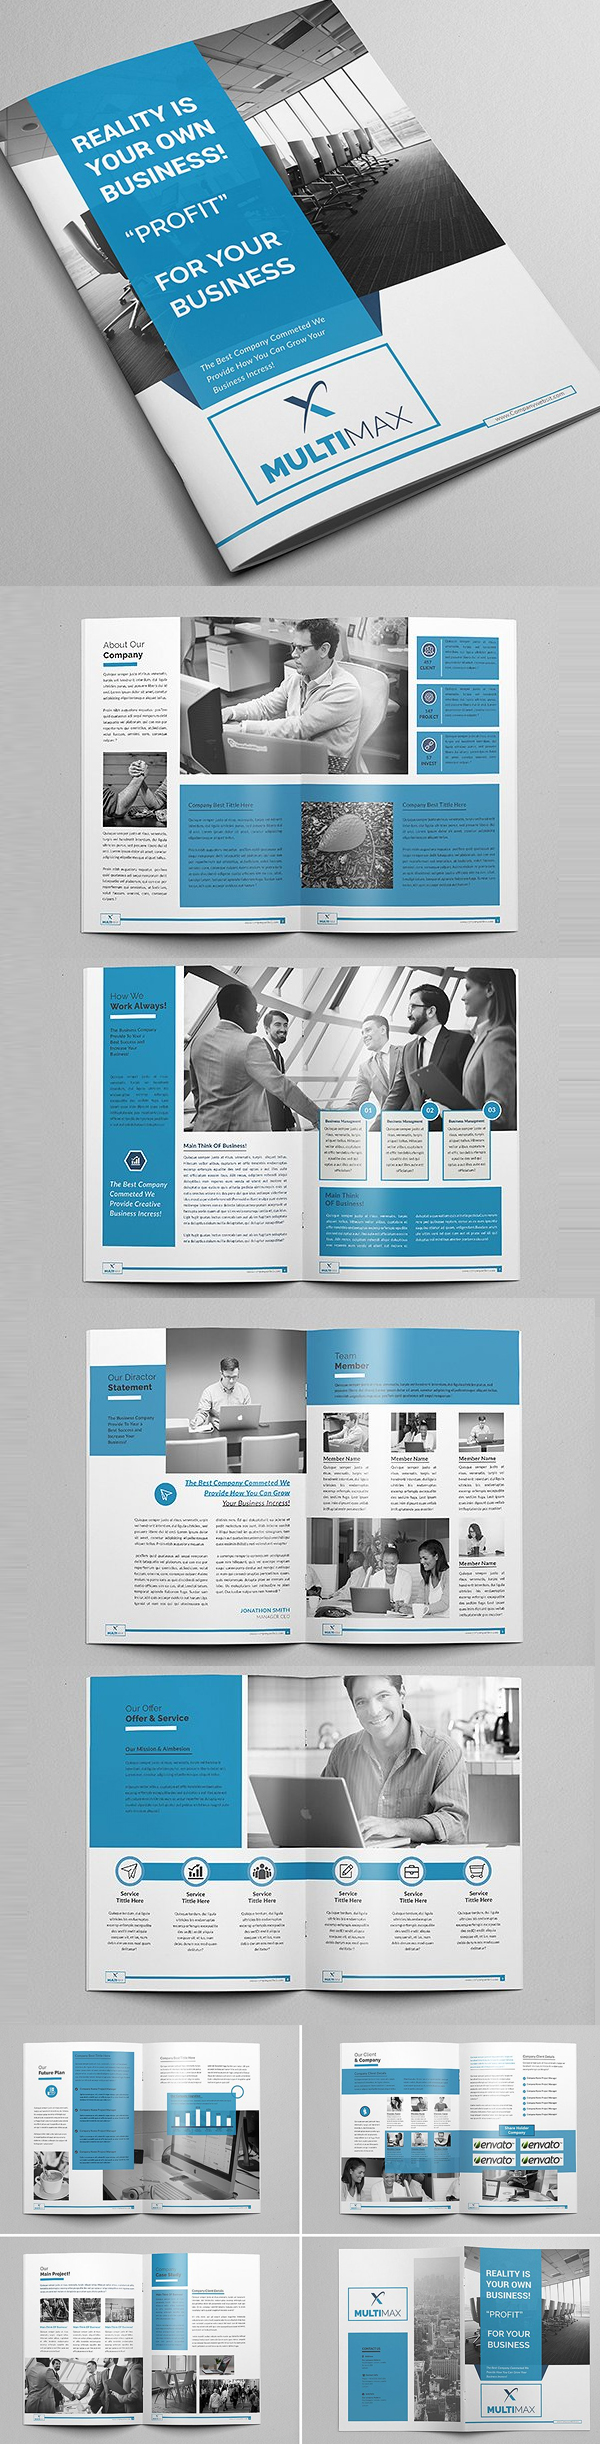 100 Professional Corporate Brochure Templates - 22